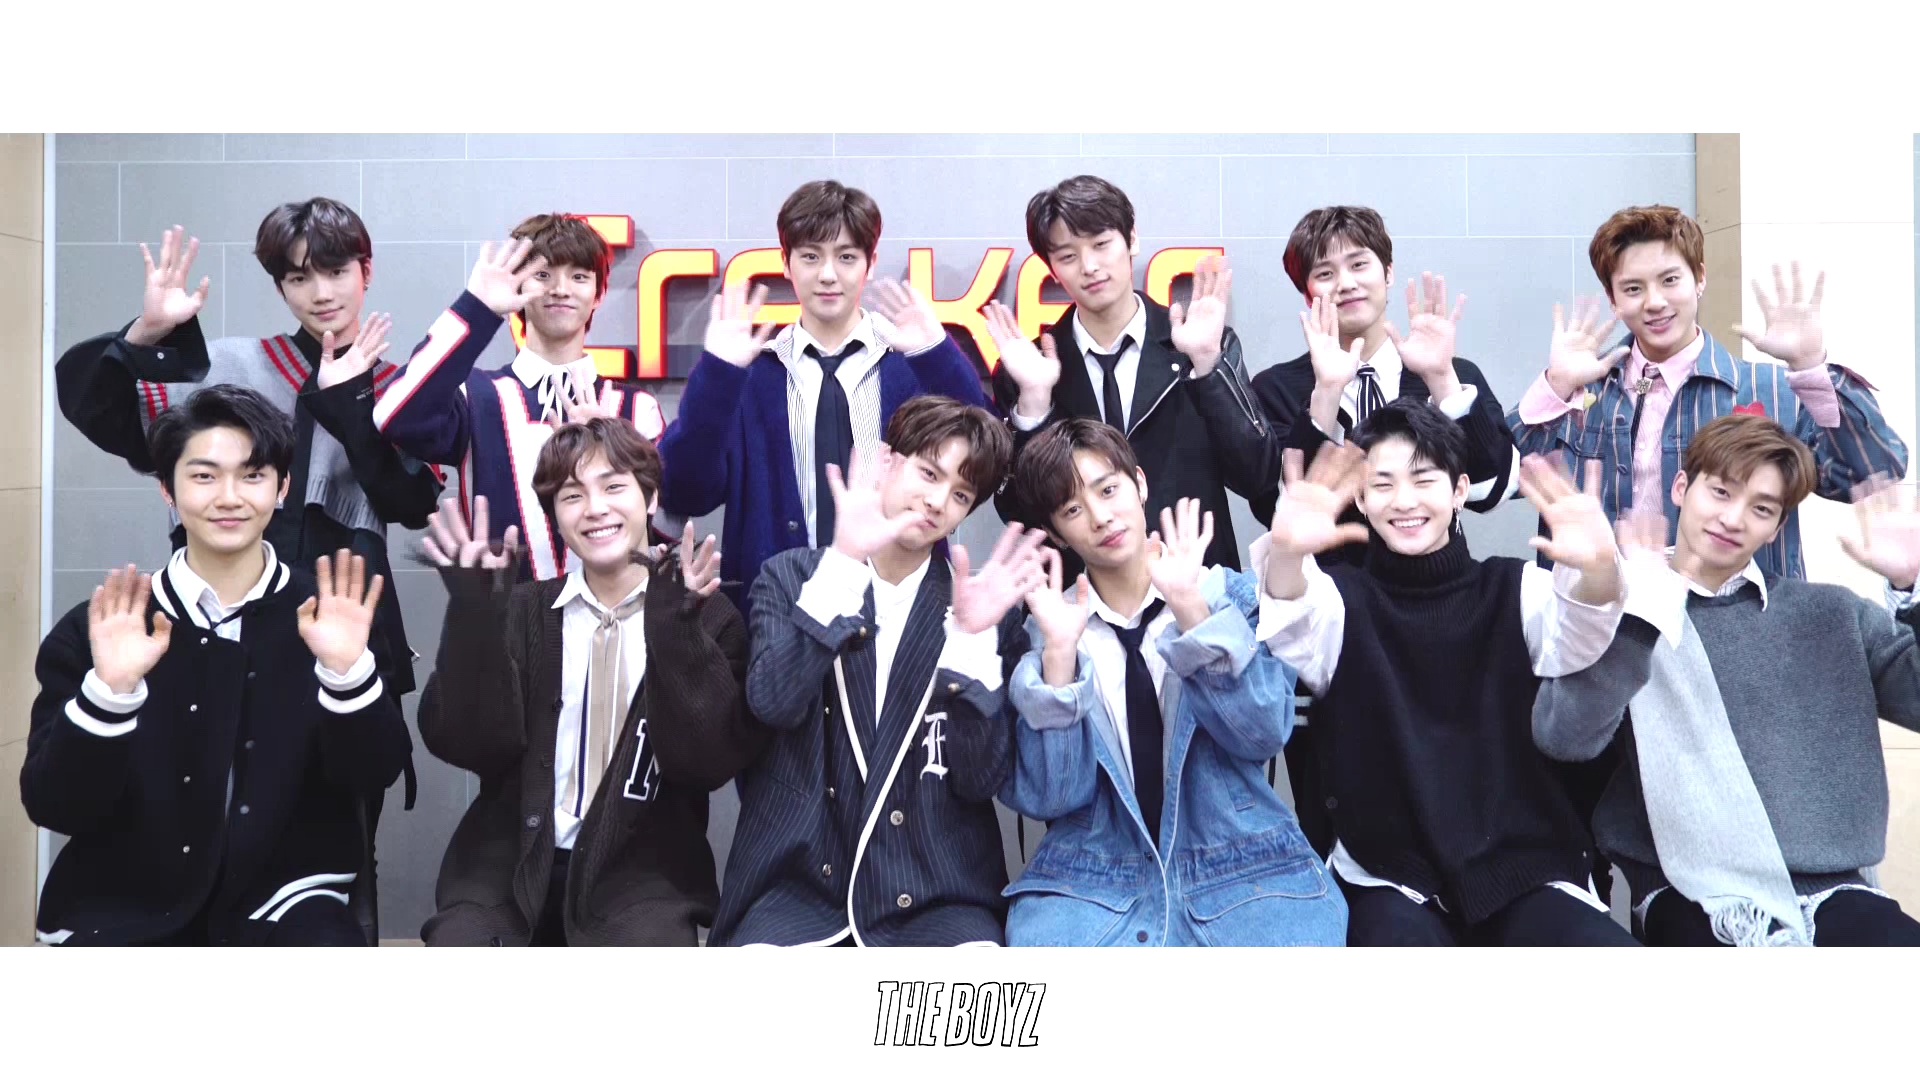 더보이즈(THE BOYZ) 2018 NEW YEAR'S GREETINGS